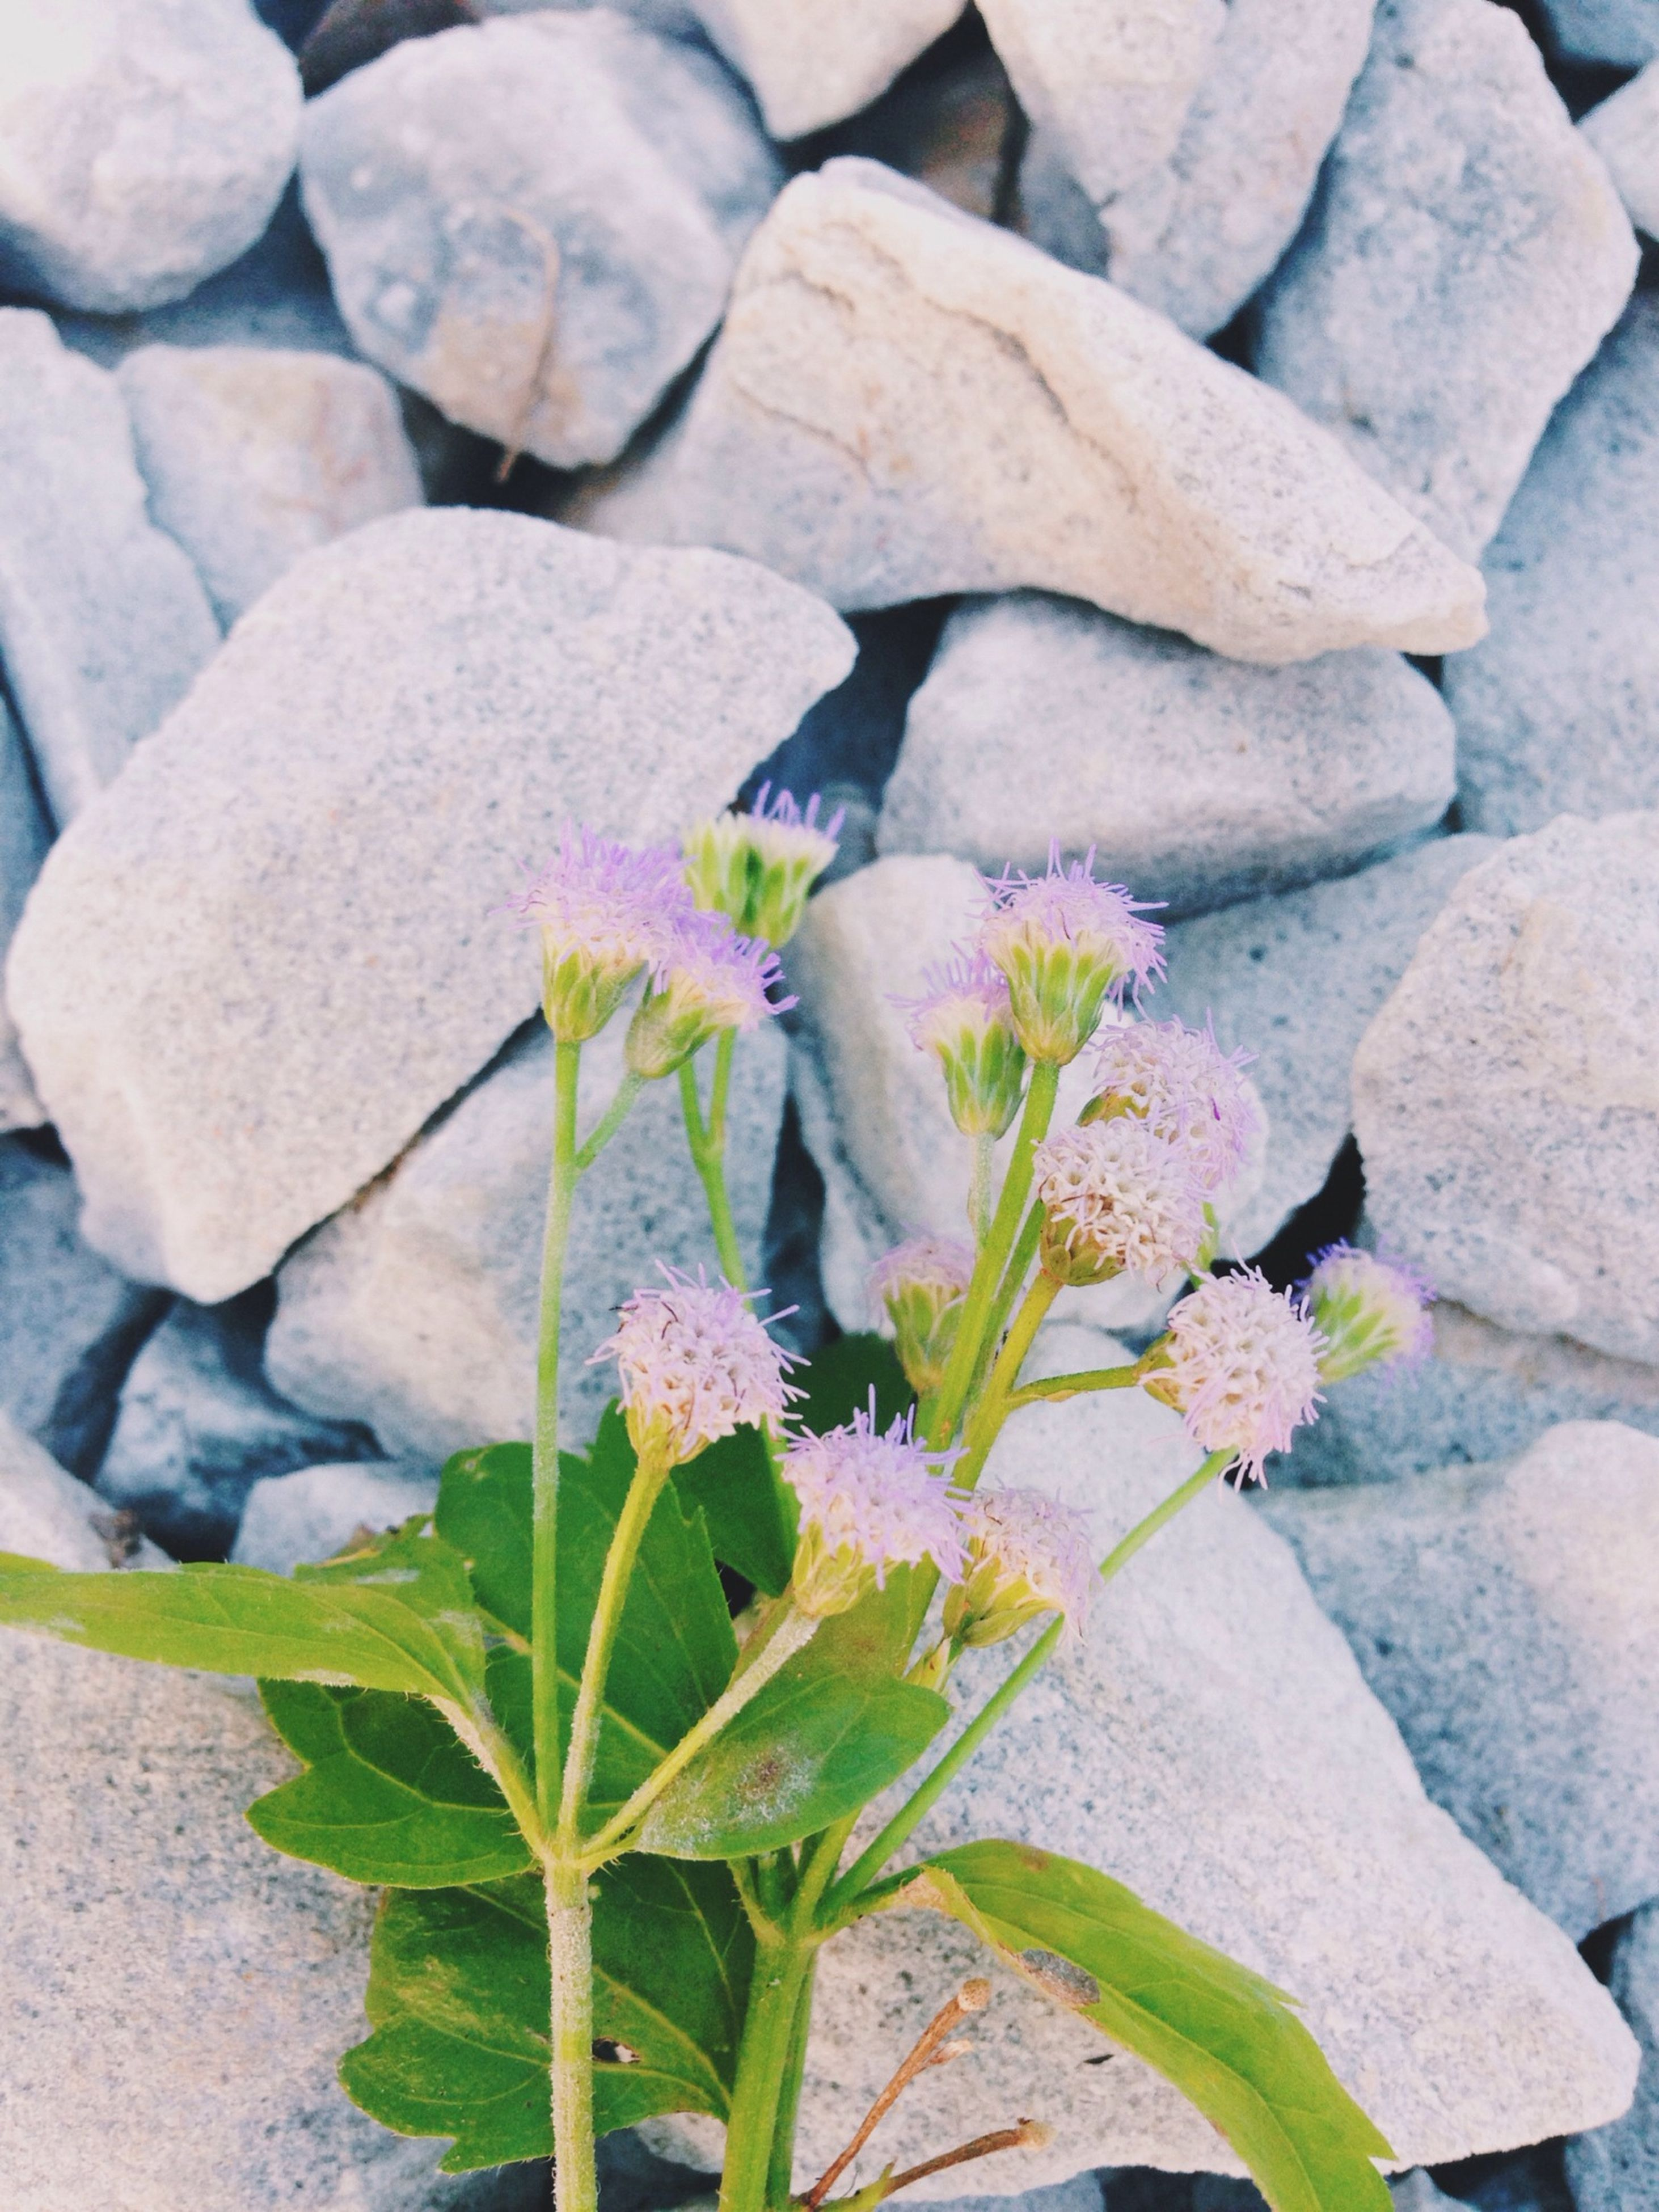 growth, plant, leaf, nature, flower, cactus, freshness, beauty in nature, close-up, fragility, growing, day, abundance, high angle view, outdoors, field, green color, tranquility, no people, rock - object